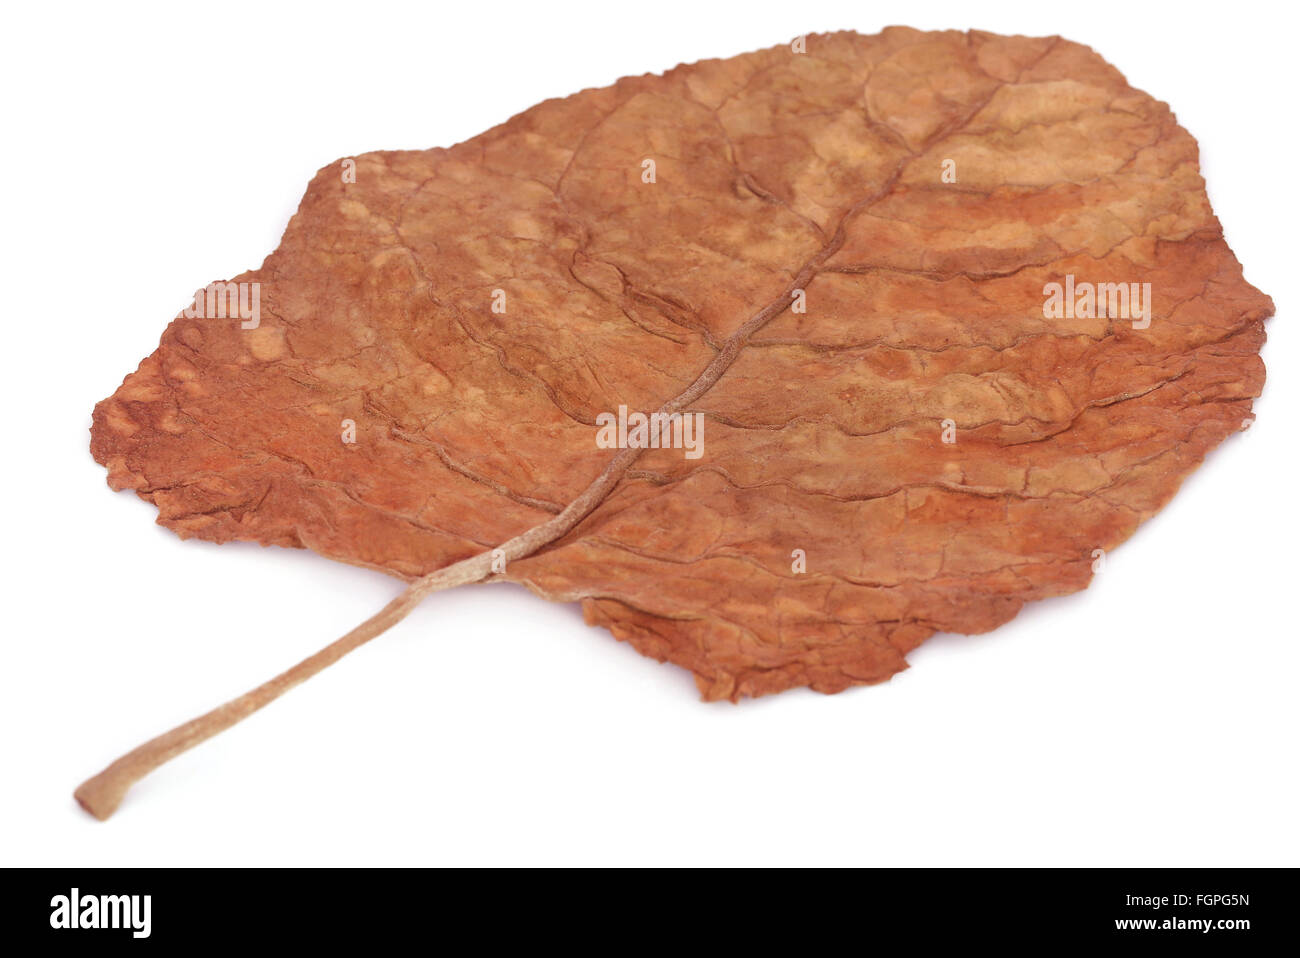 Whole dry tobacco leaves over white background - Stock Image